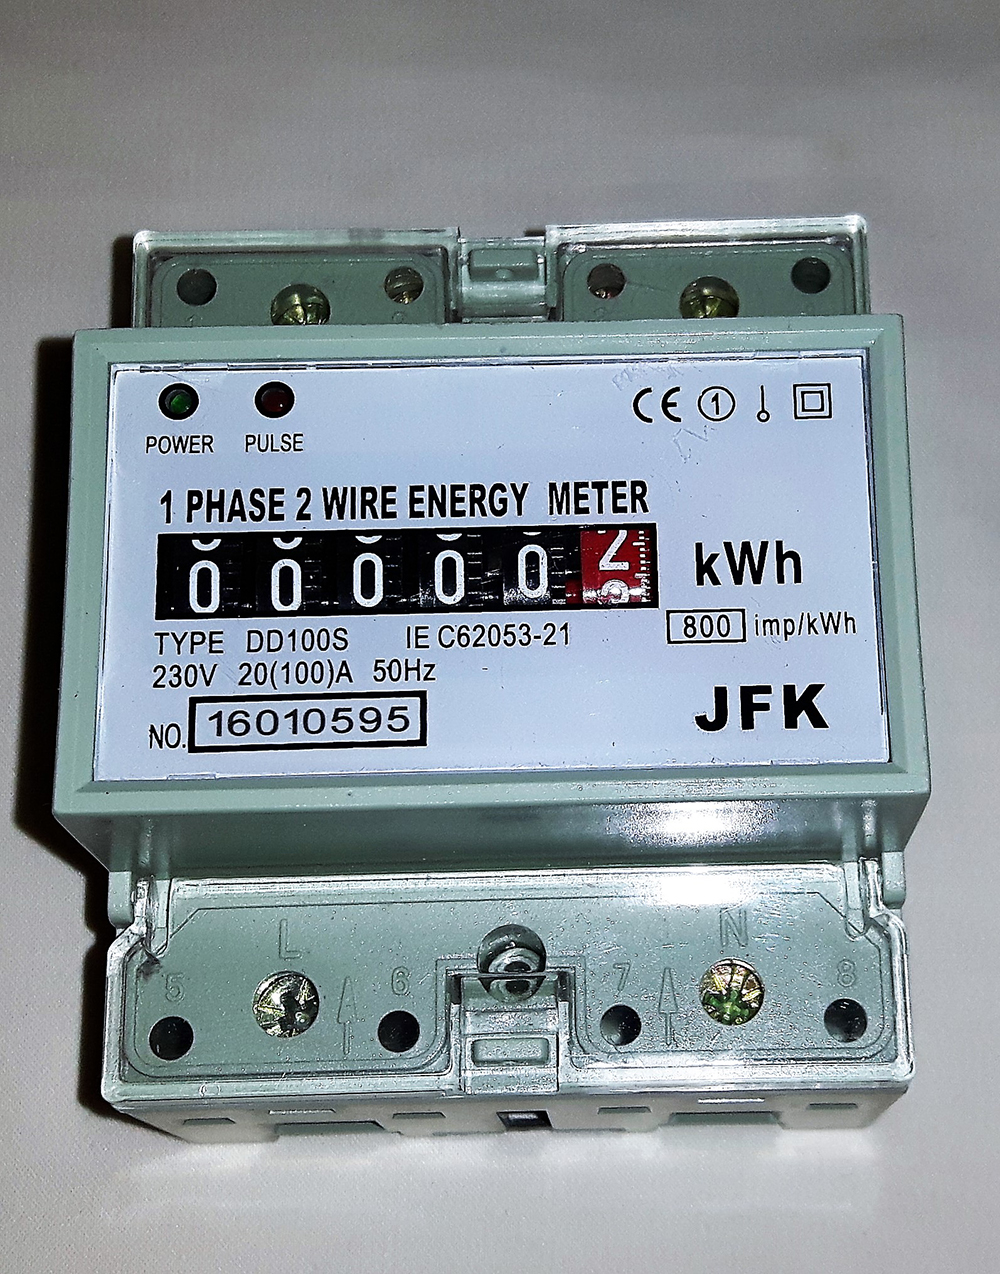 Kilowatt Usage Meter : Kilowatt hour power consumption meter jfk electrical